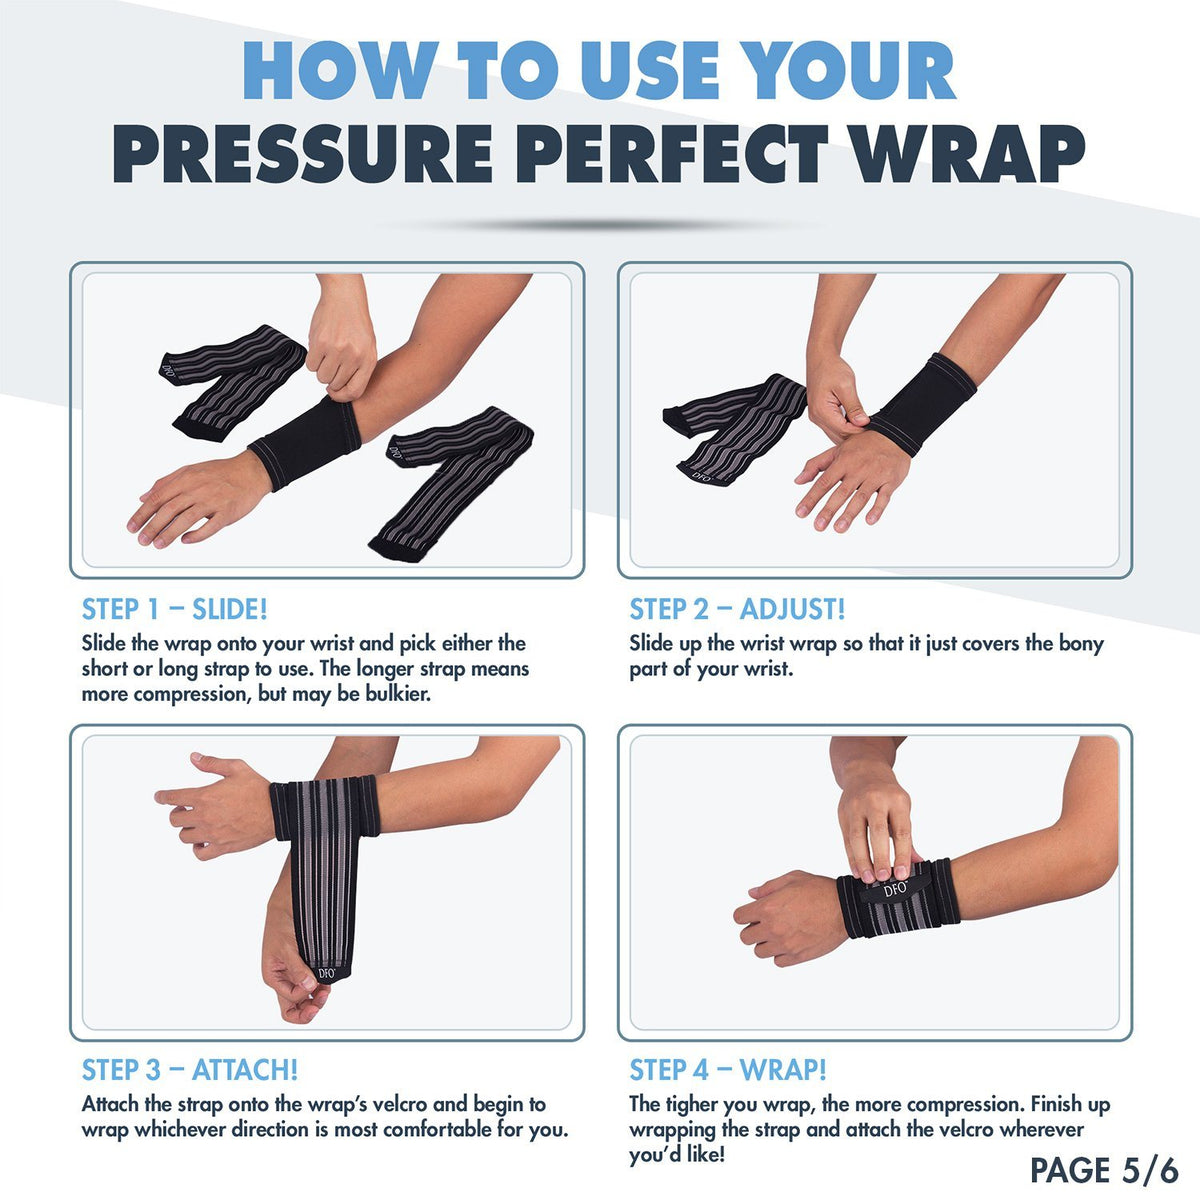 Perfect Wrist Brace with 2 Fully Adjustable & Modular Wrist Straps - Hand Brace with Thumb Support - One Unit, Left and Right Hand Wrist Pain Dr. Frederick's Original